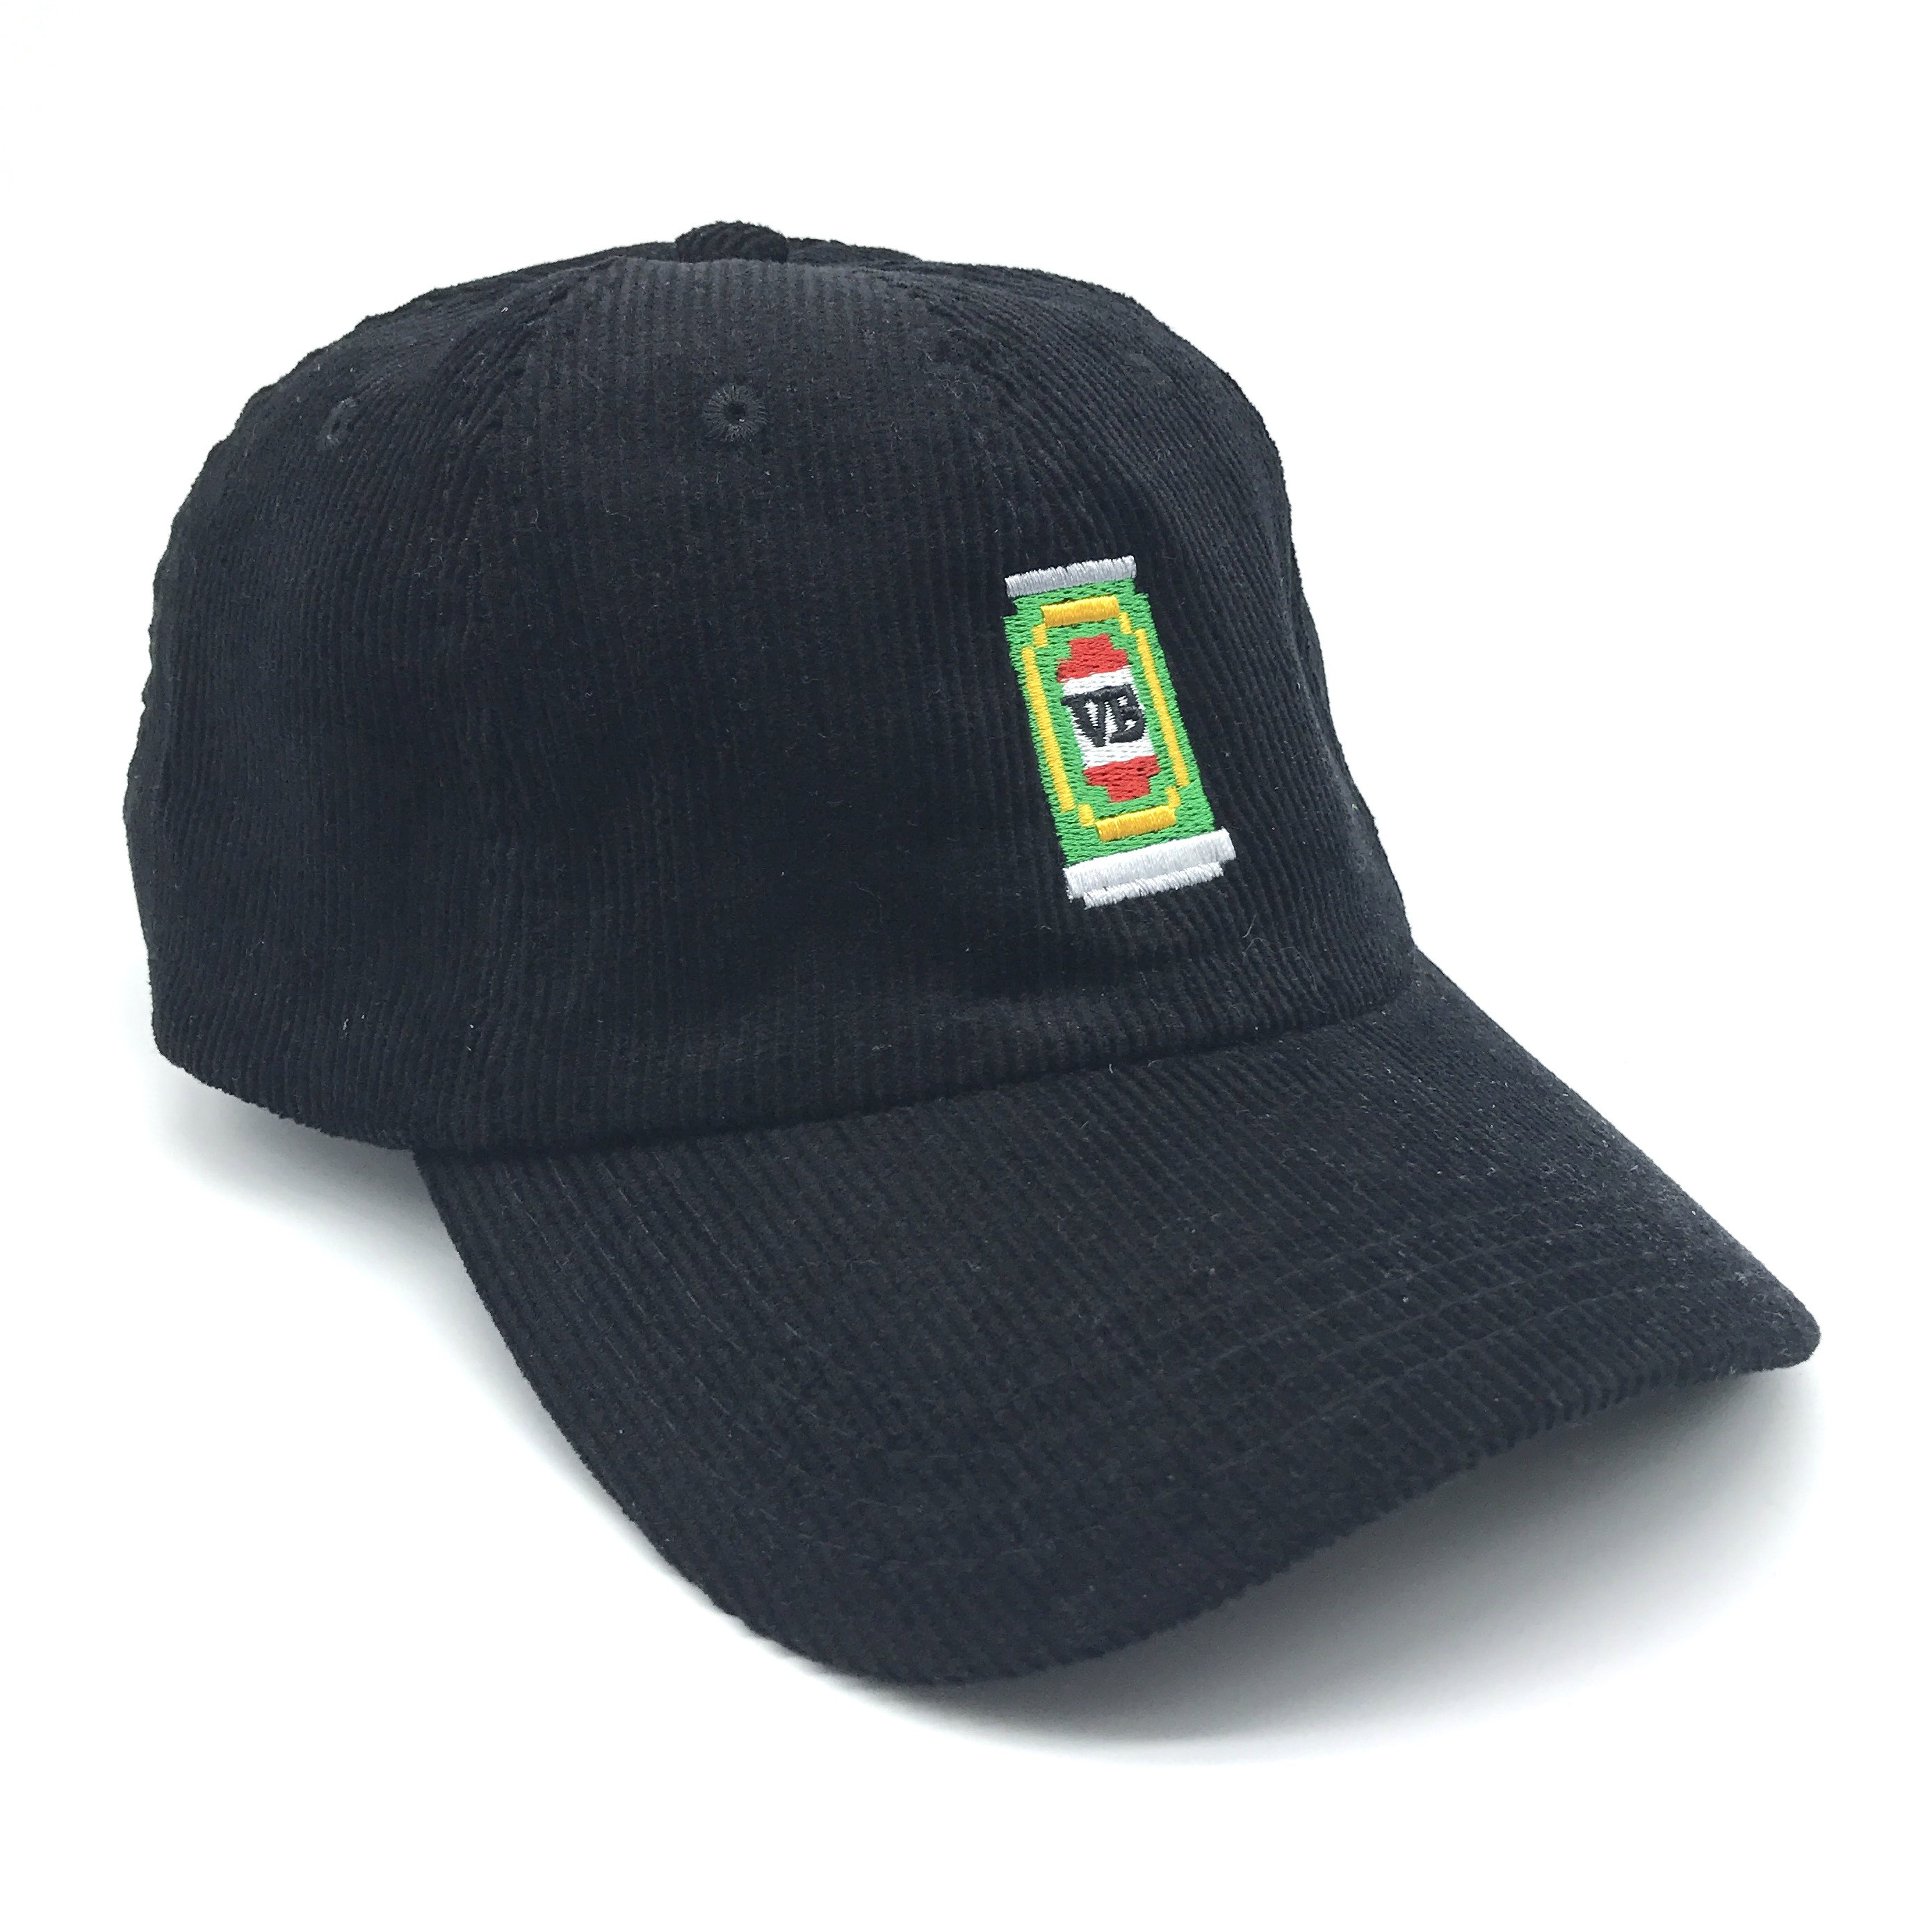 8BIT DAD HAT BLACK CORD